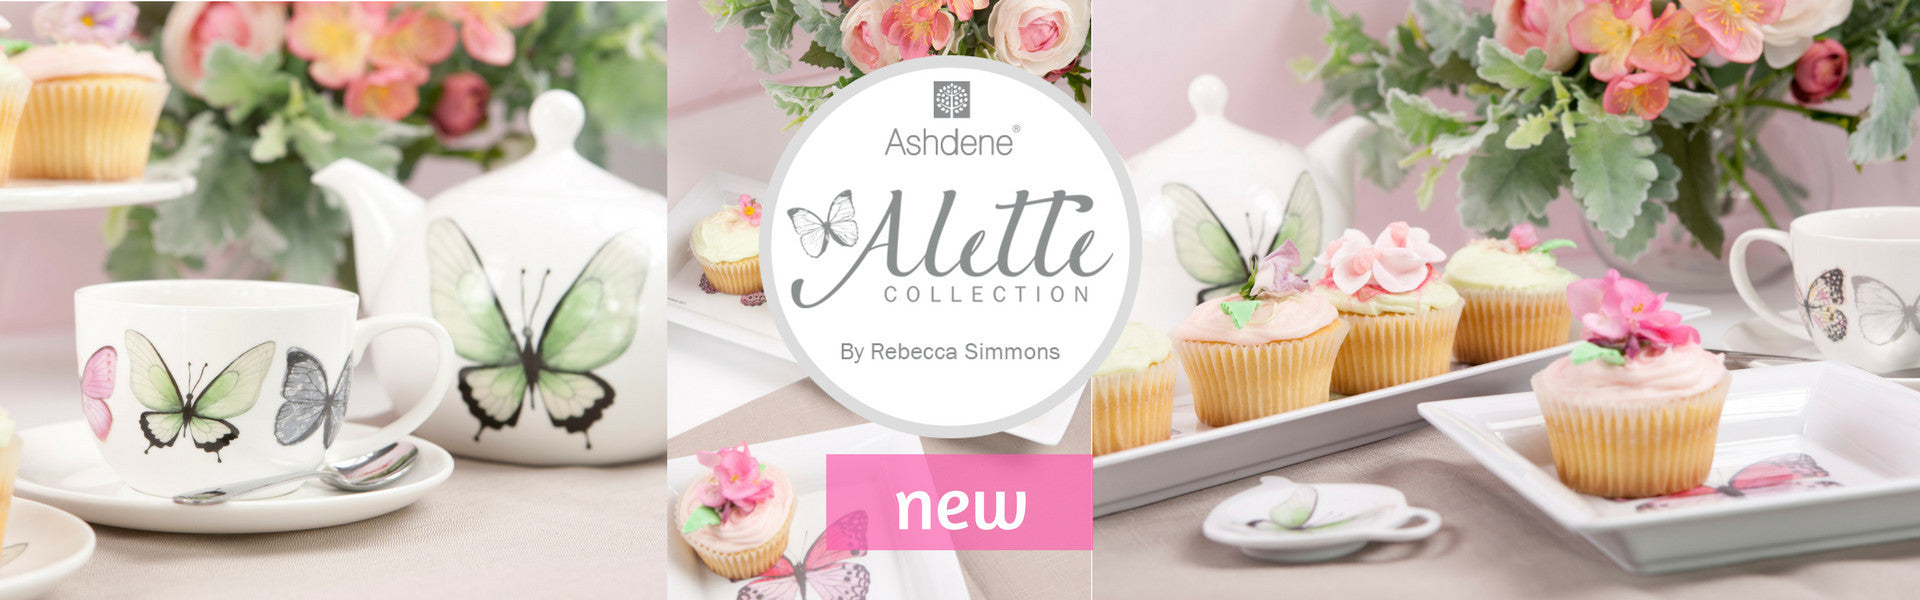 Ashdene Charlotte high tea china